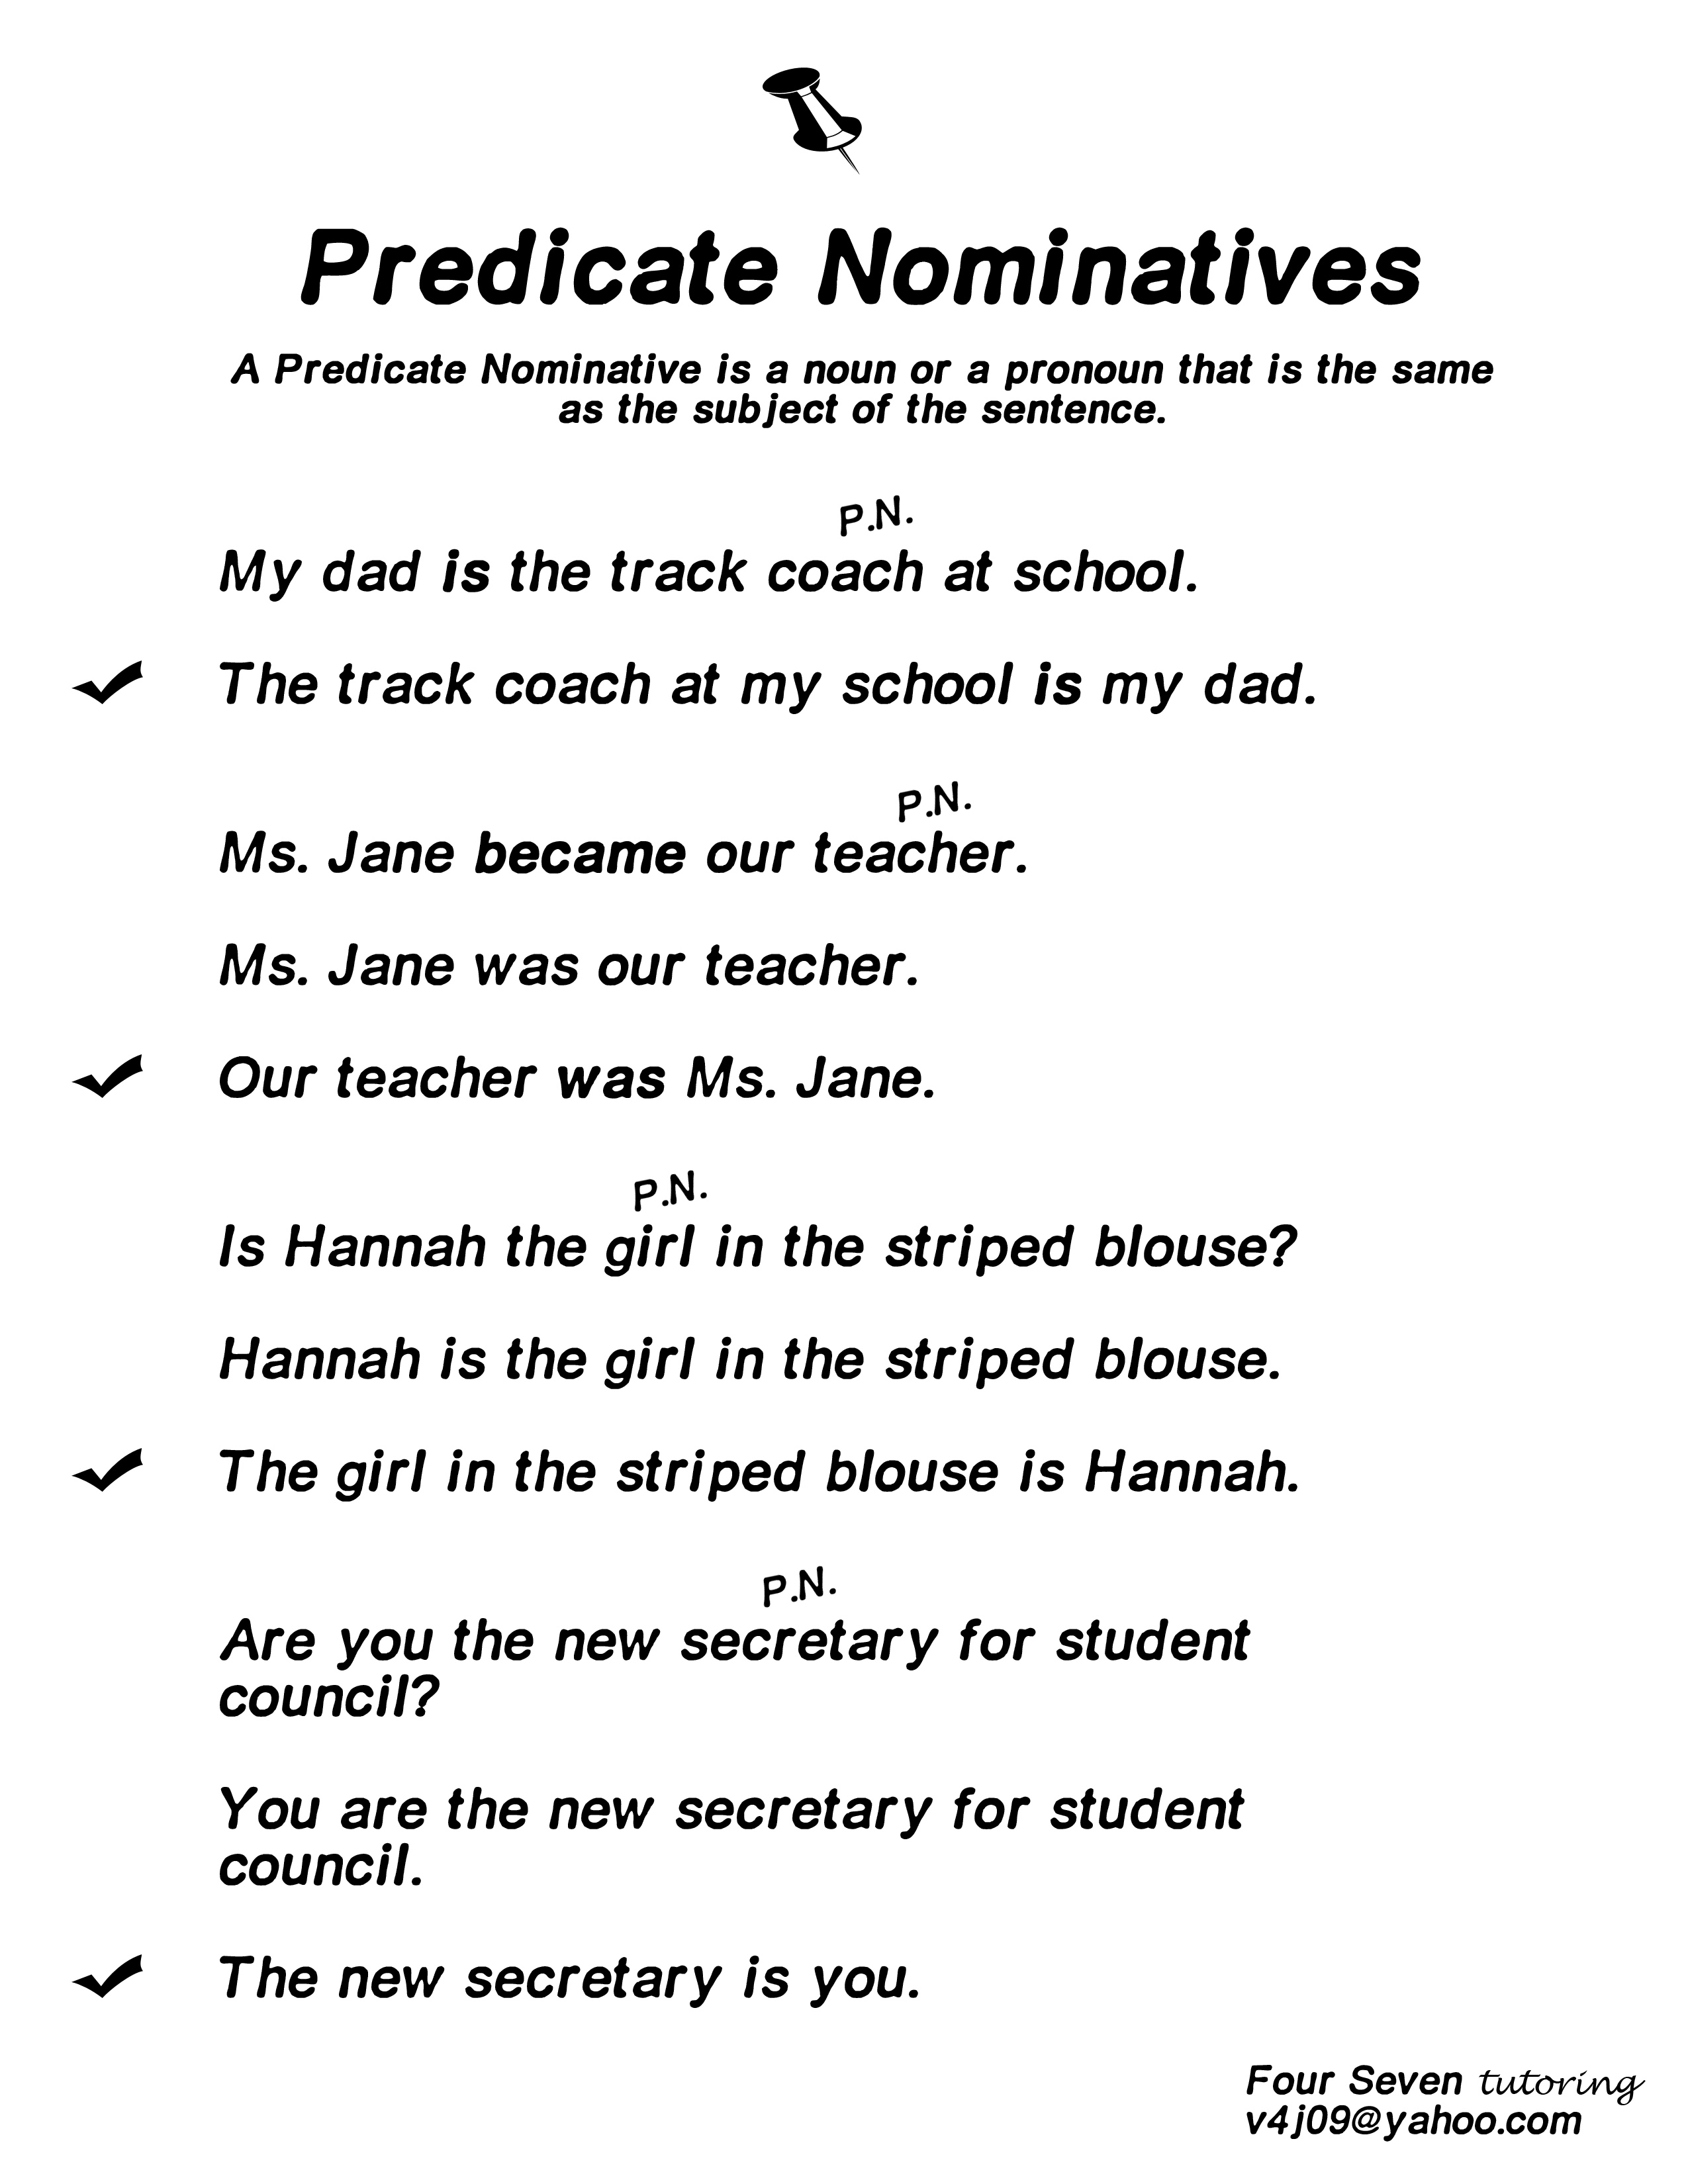 Predicate Nominatives Resource